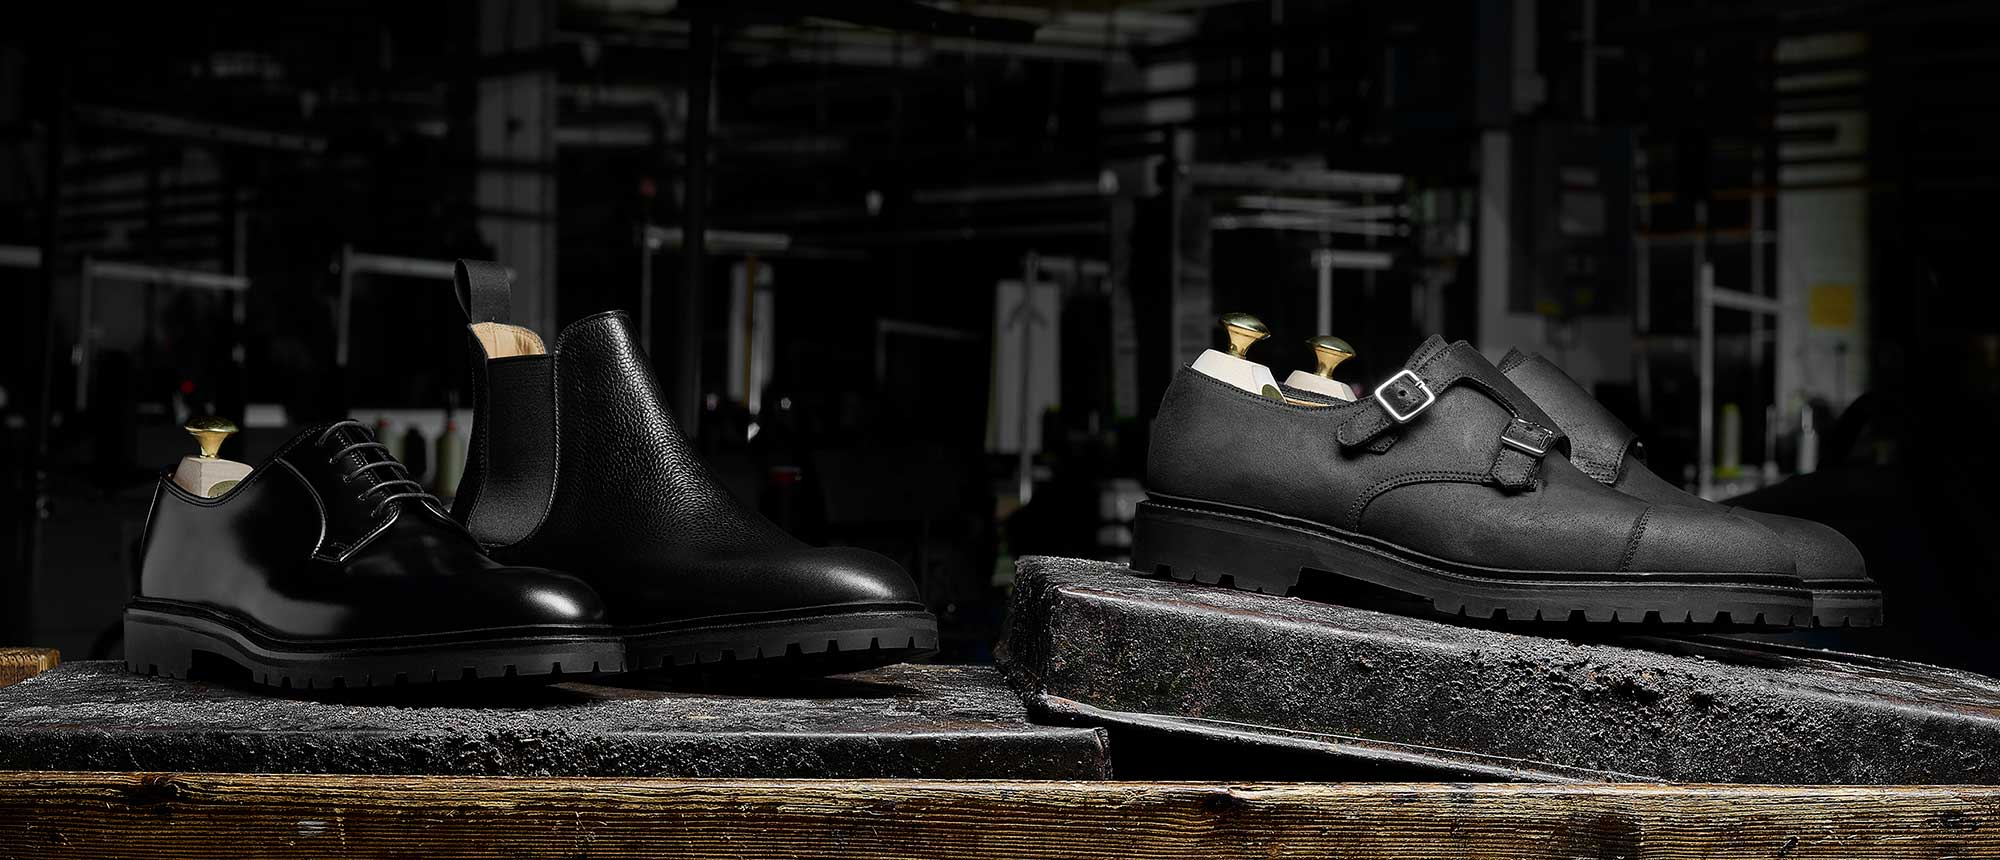 Crockett & Jones - The Black Editions Details... Tay 2